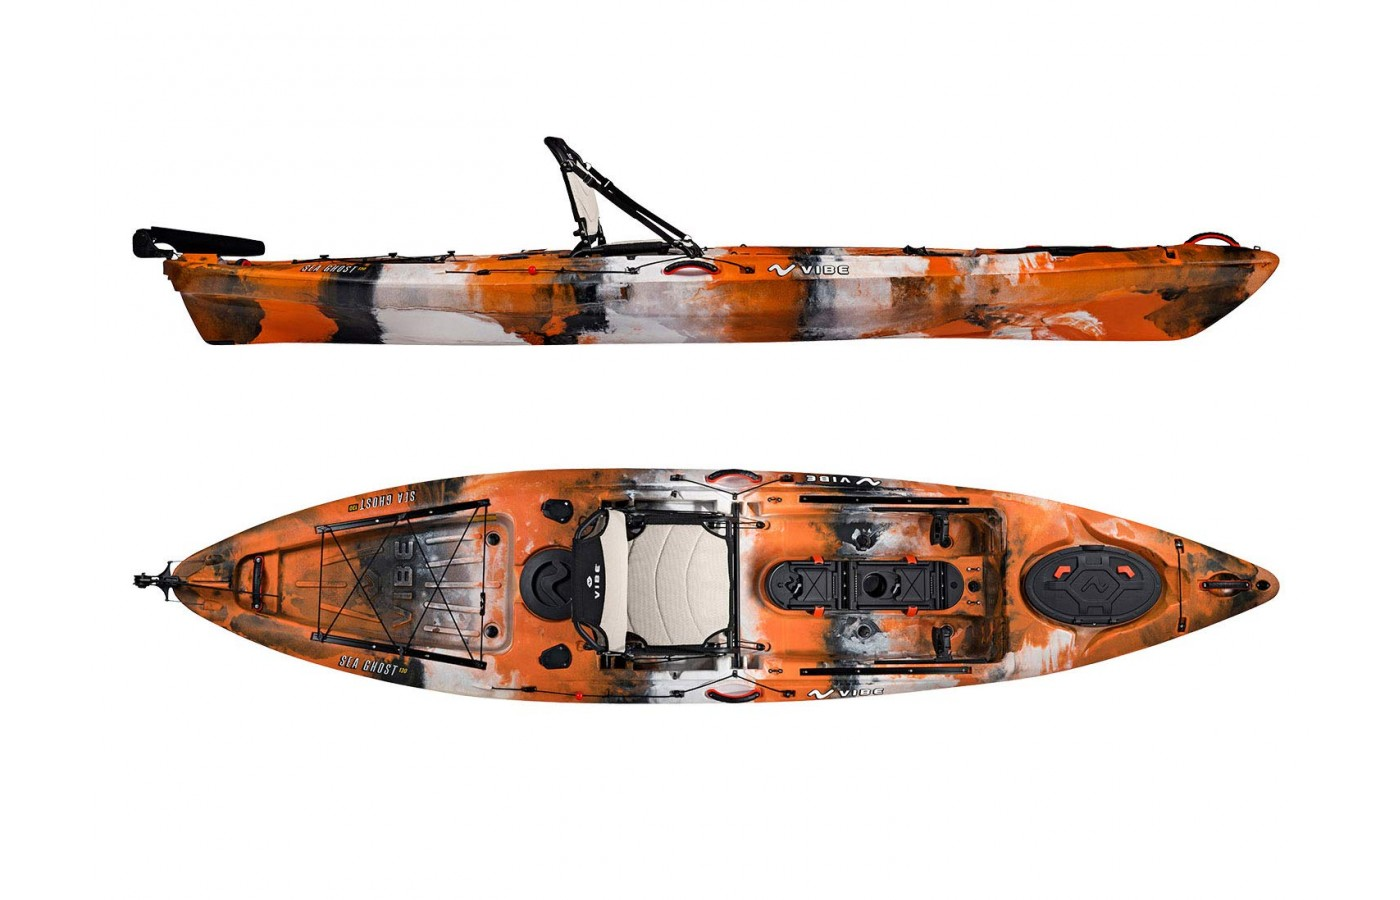 The Sea Ghost 130 has features anglers demand.